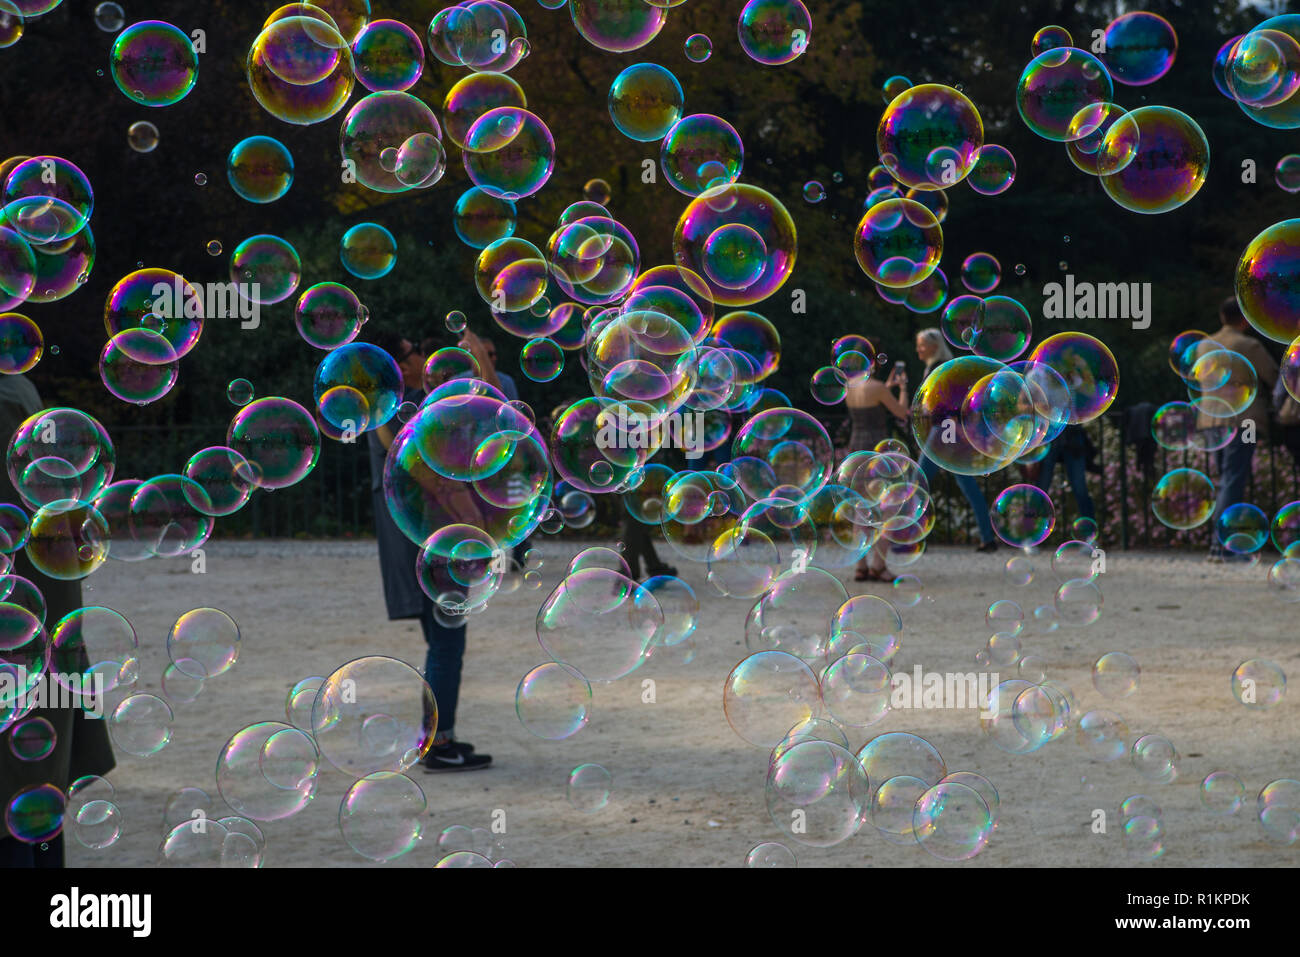 Soap bubbles floating in the air - Stock Image